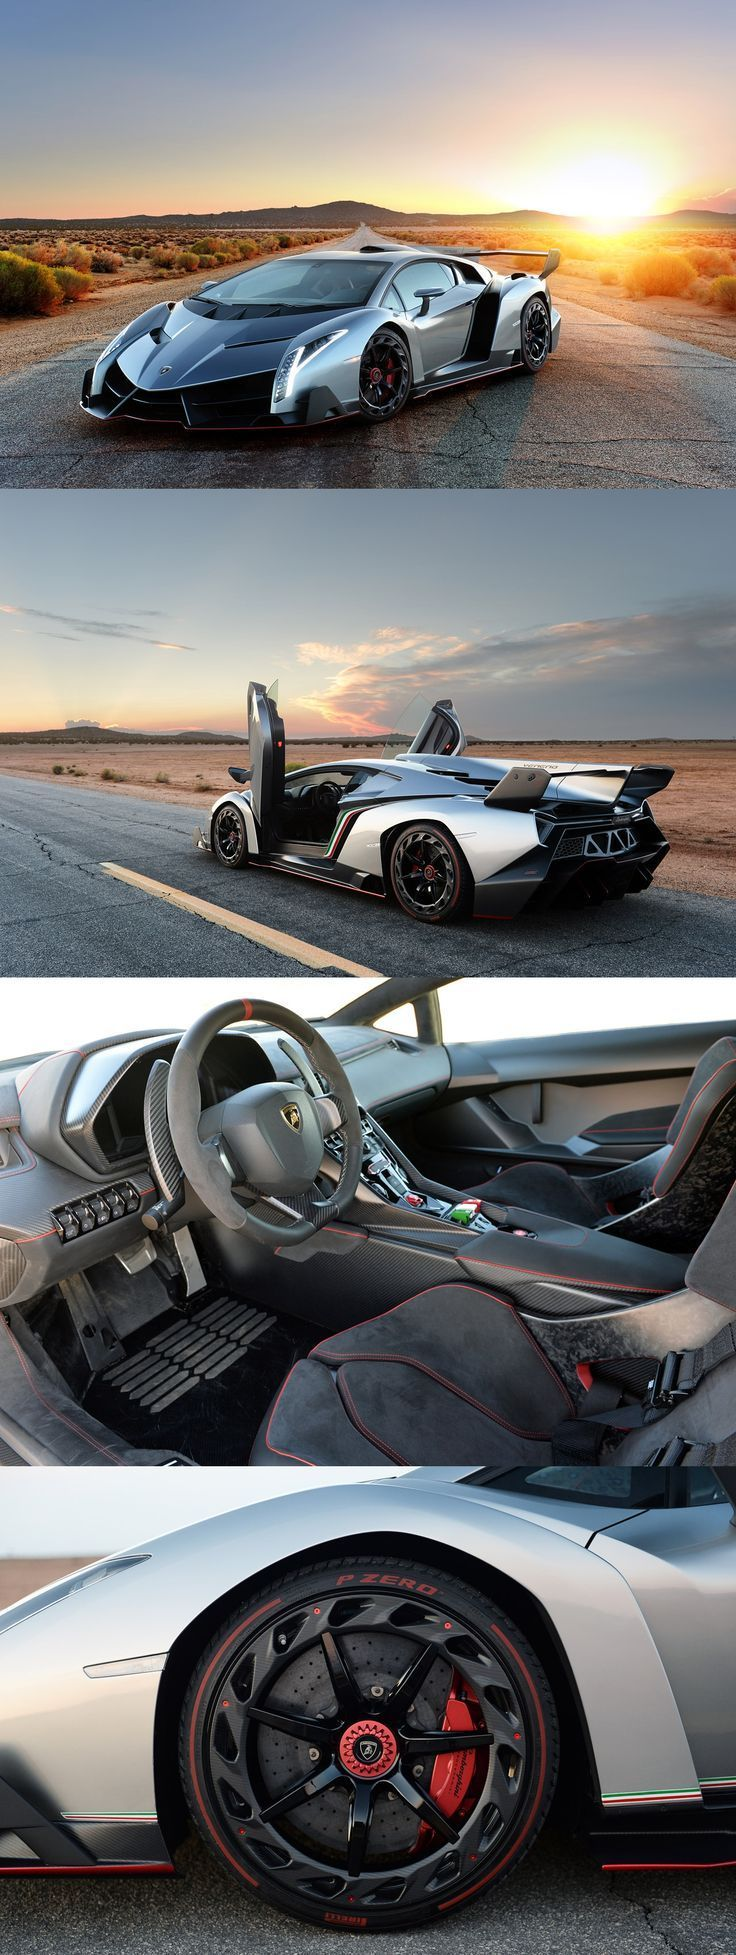 The Lamborghini Veneno - have Lambo got it right with this #hypercar?  http://SealingsandExpungements.com 888-9-EXPUNGE Free Evaluations--Easy Payments